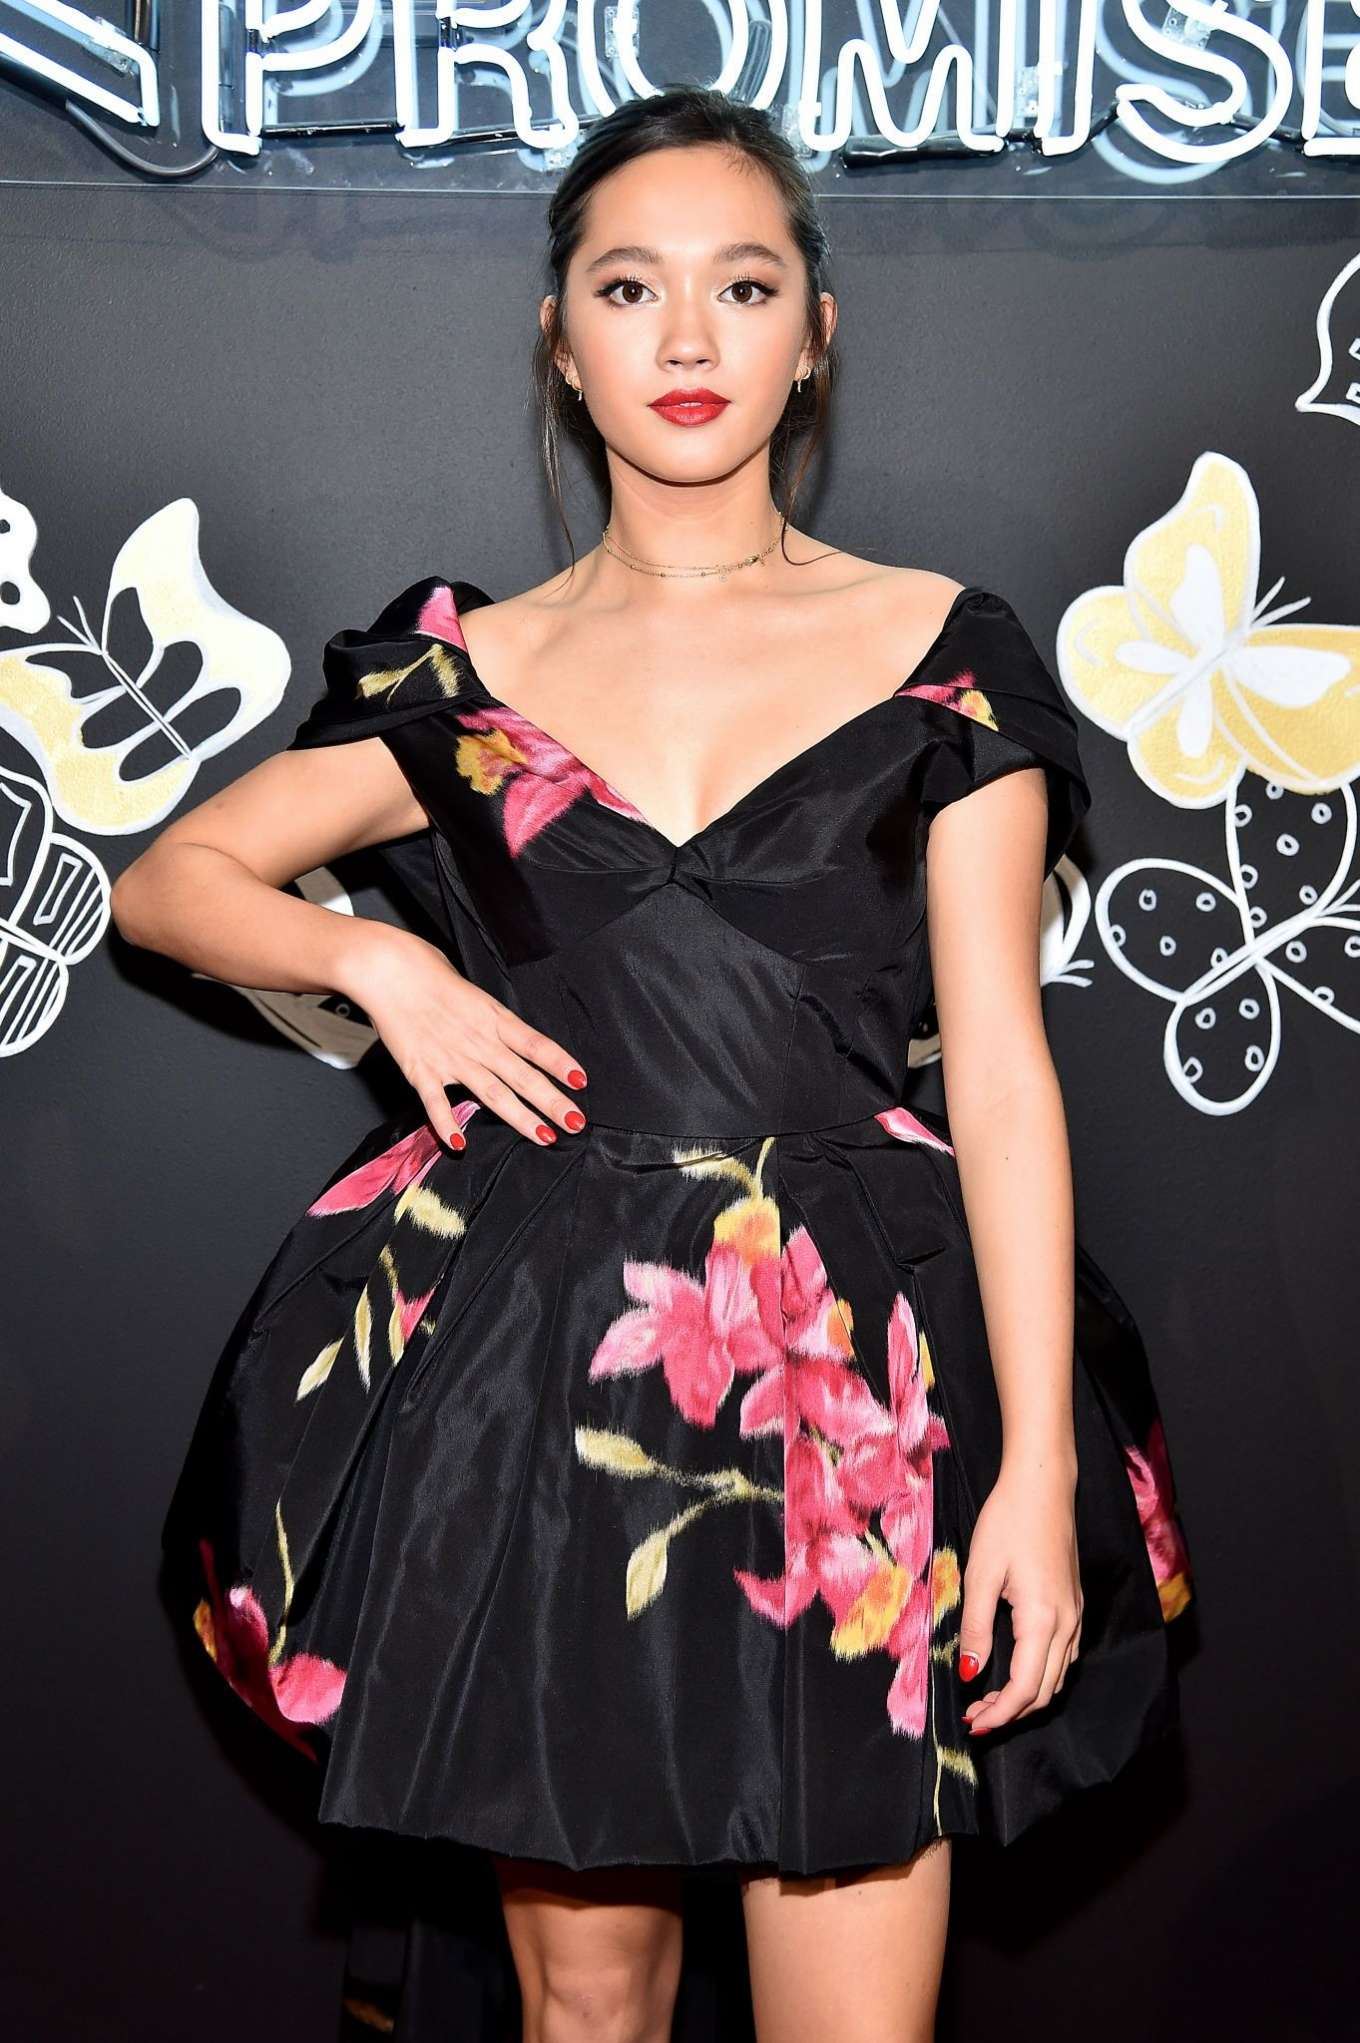 Lily Chee - Pencils of Promise Gala in New York